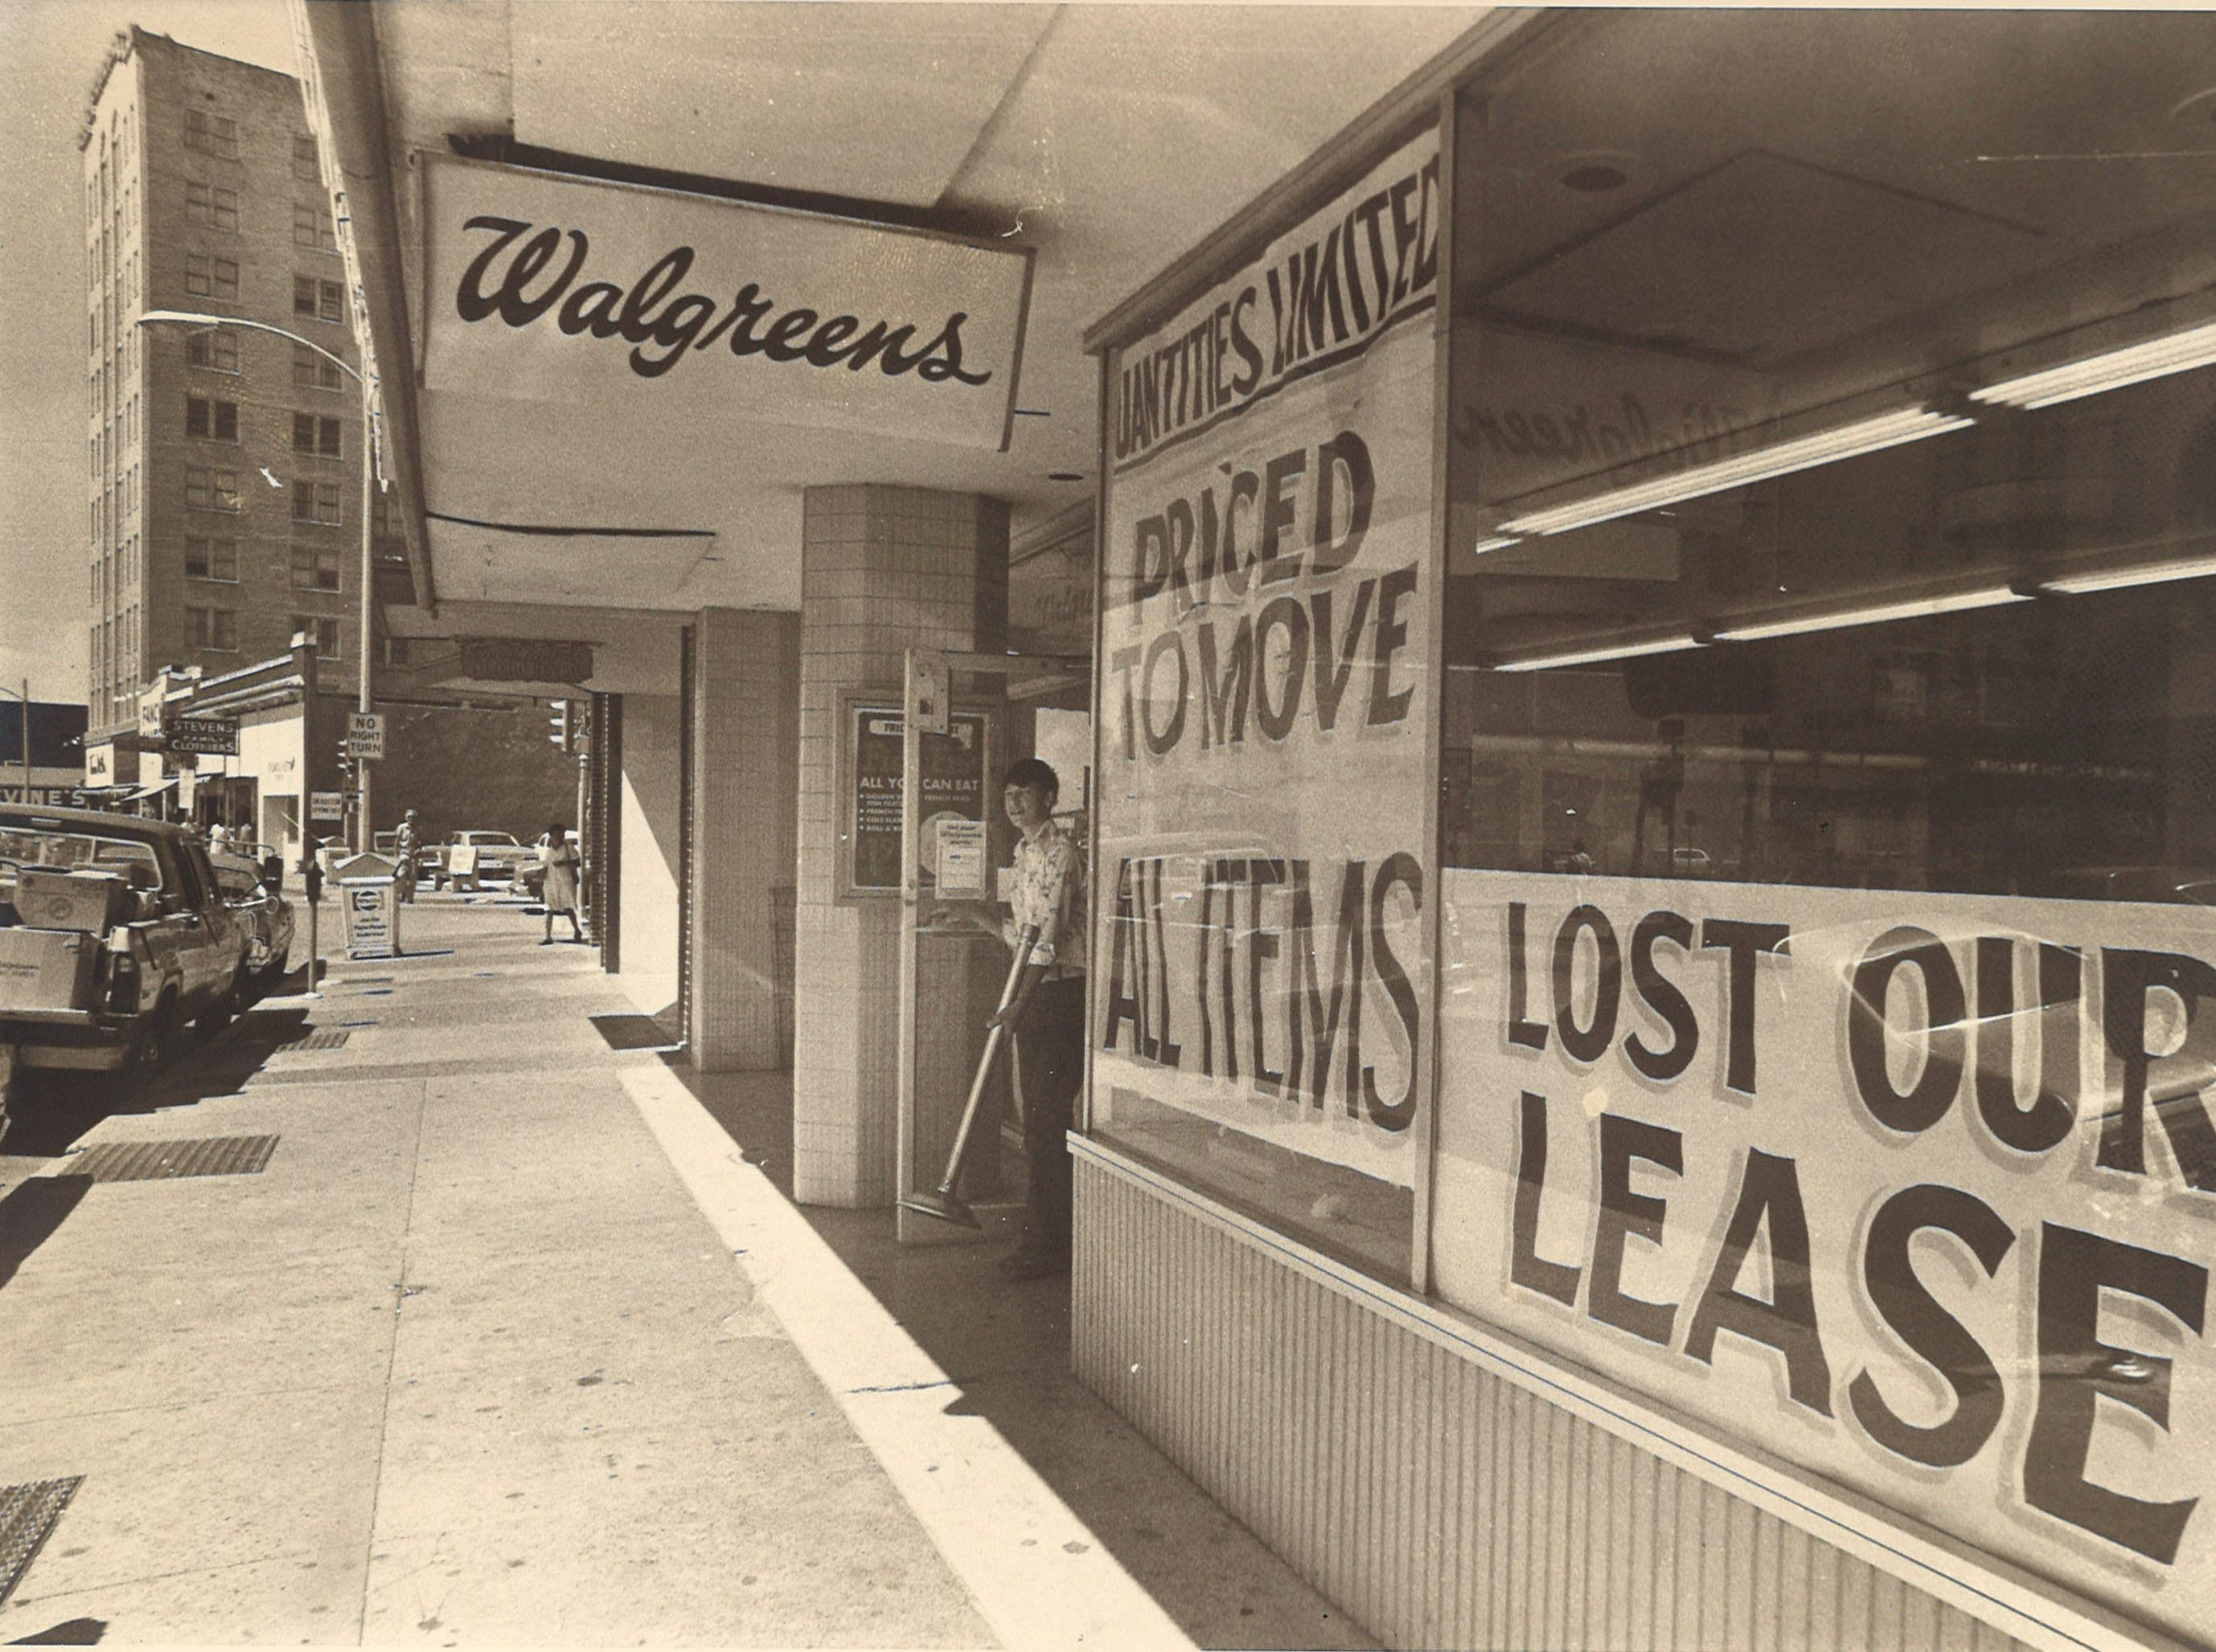 The Walgreens in the 400 block of Chaparral in downtown Corpus Christi relocated in July 1976. The drugstore had been at the location since the 1940s.